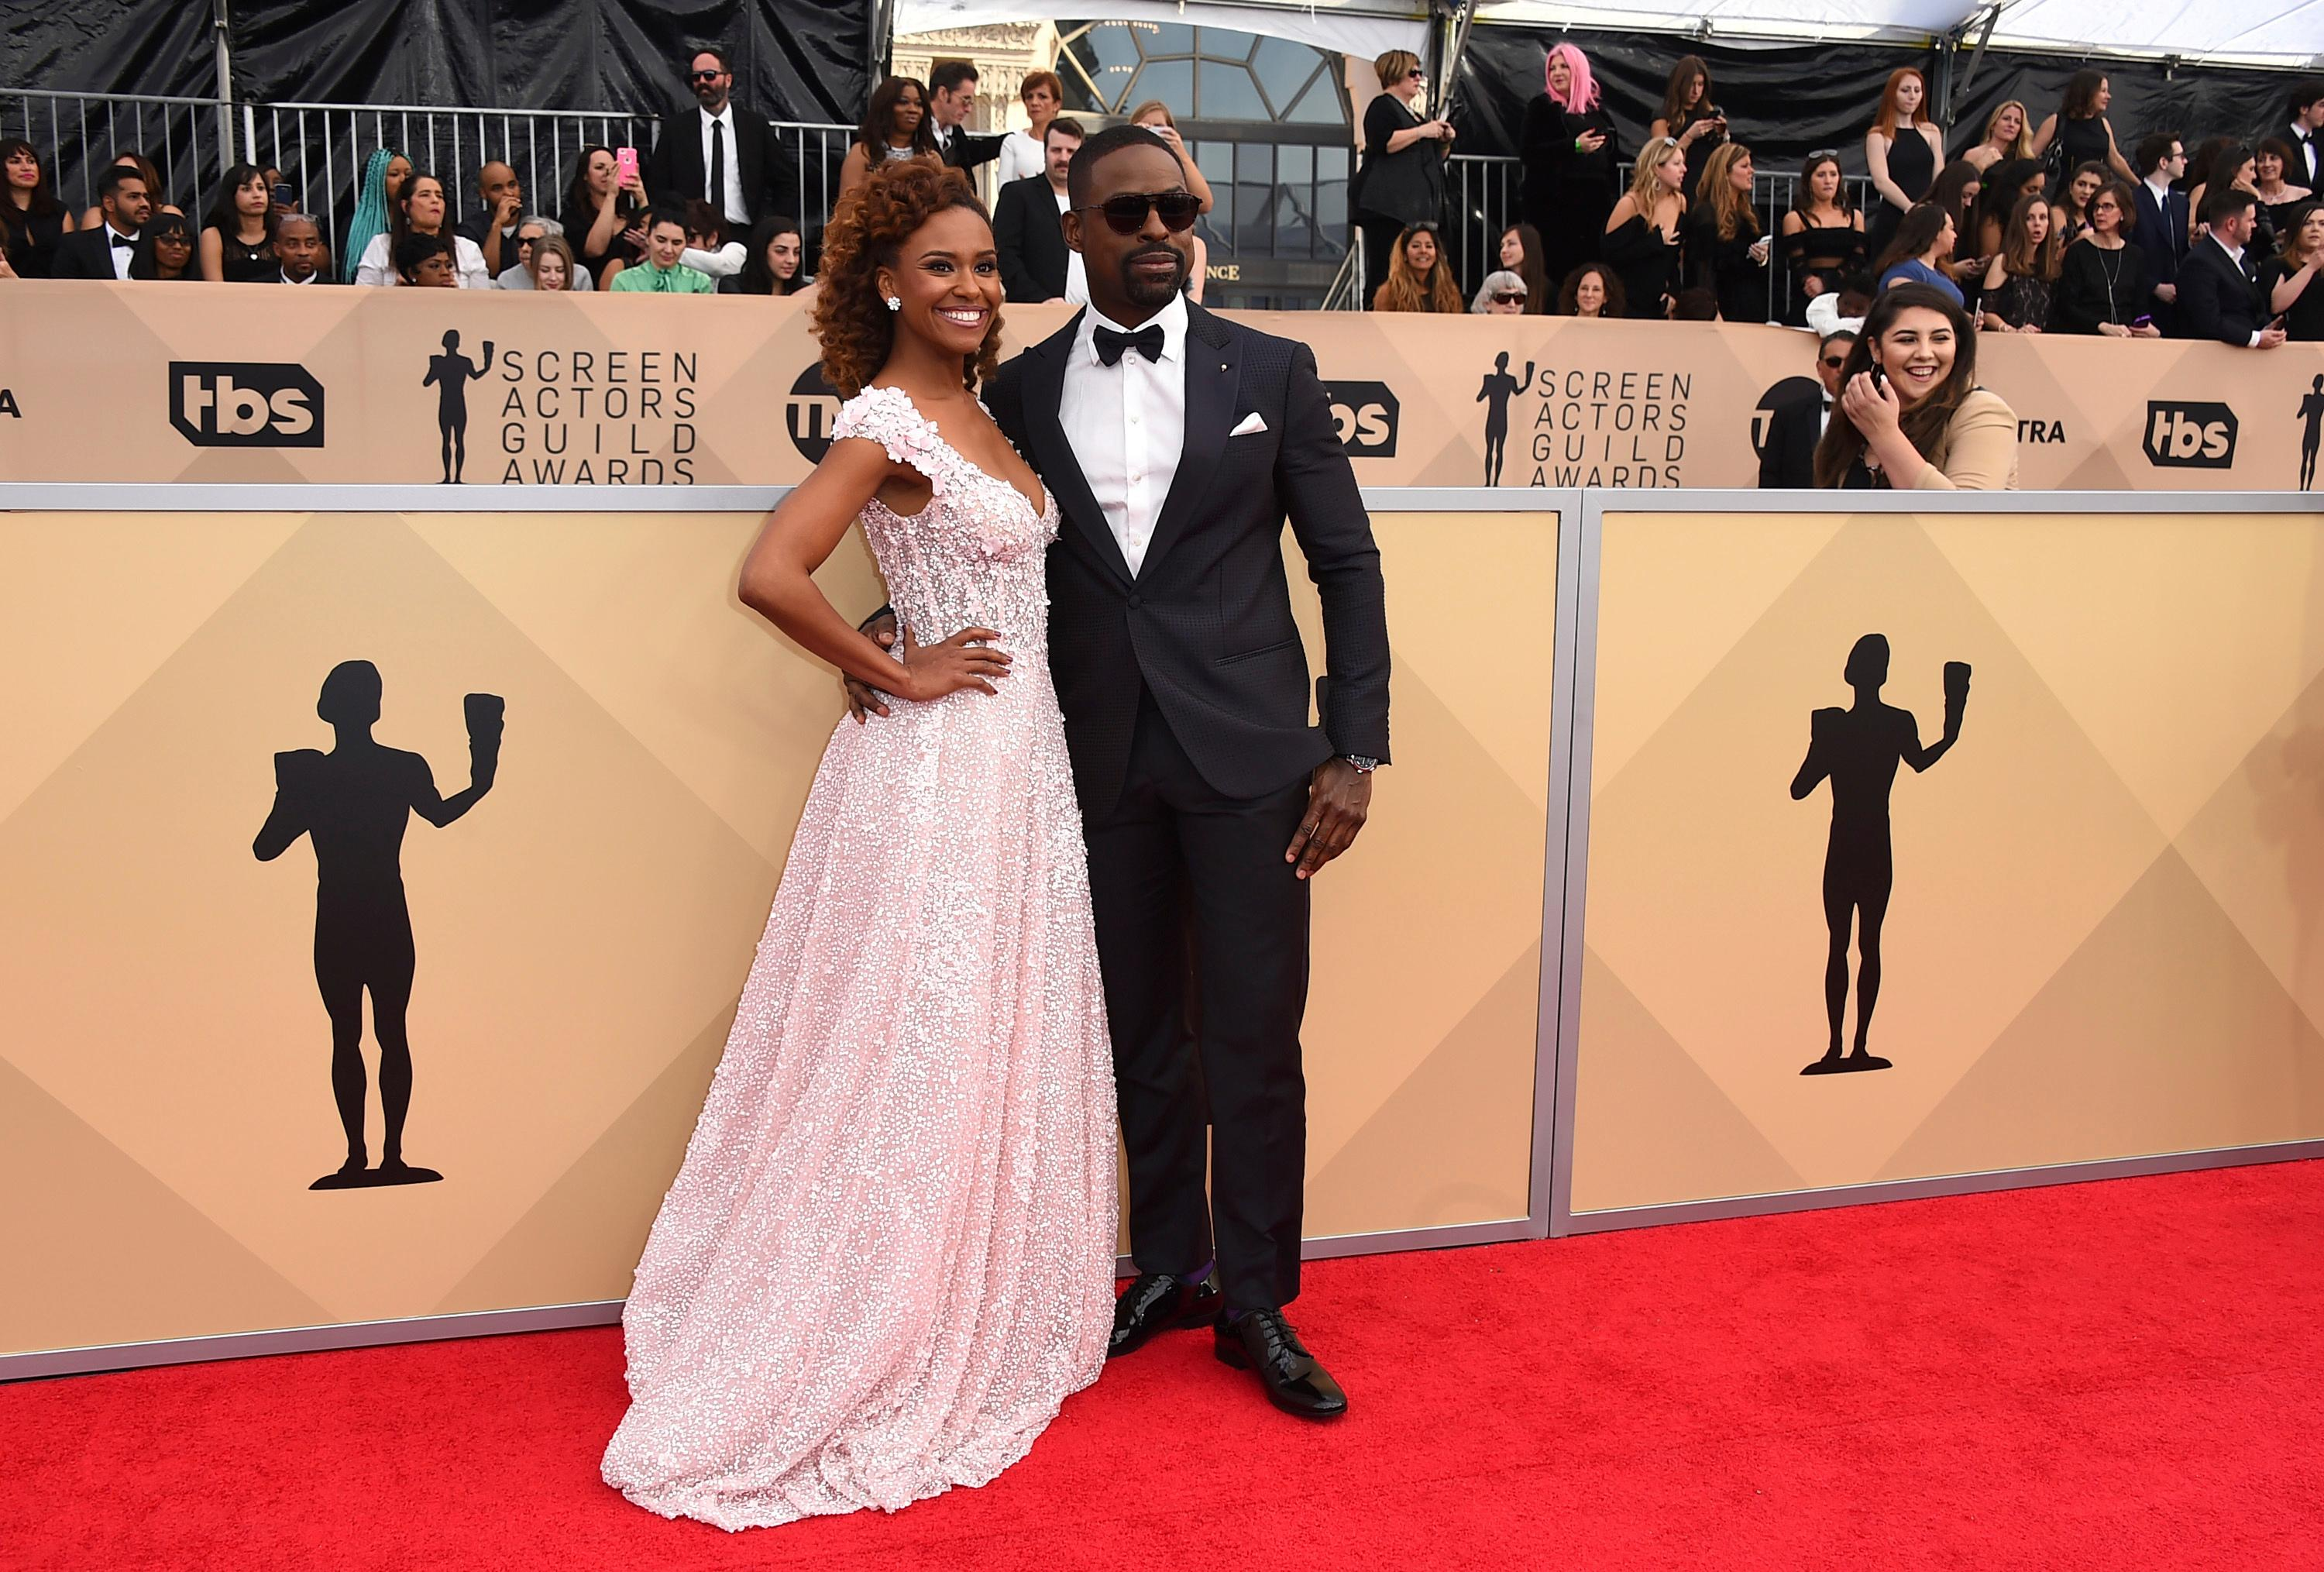 Ryan Michelle Bathe, left, and Sterling K. Brown arrive at the 24th annual Screen Actors Guild Awards at the Shrine Auditorium & Expo Hall on Sunday, Jan. 21, 2018, in Los Angeles. (Photo by Jordan Strauss/Invision/AP)